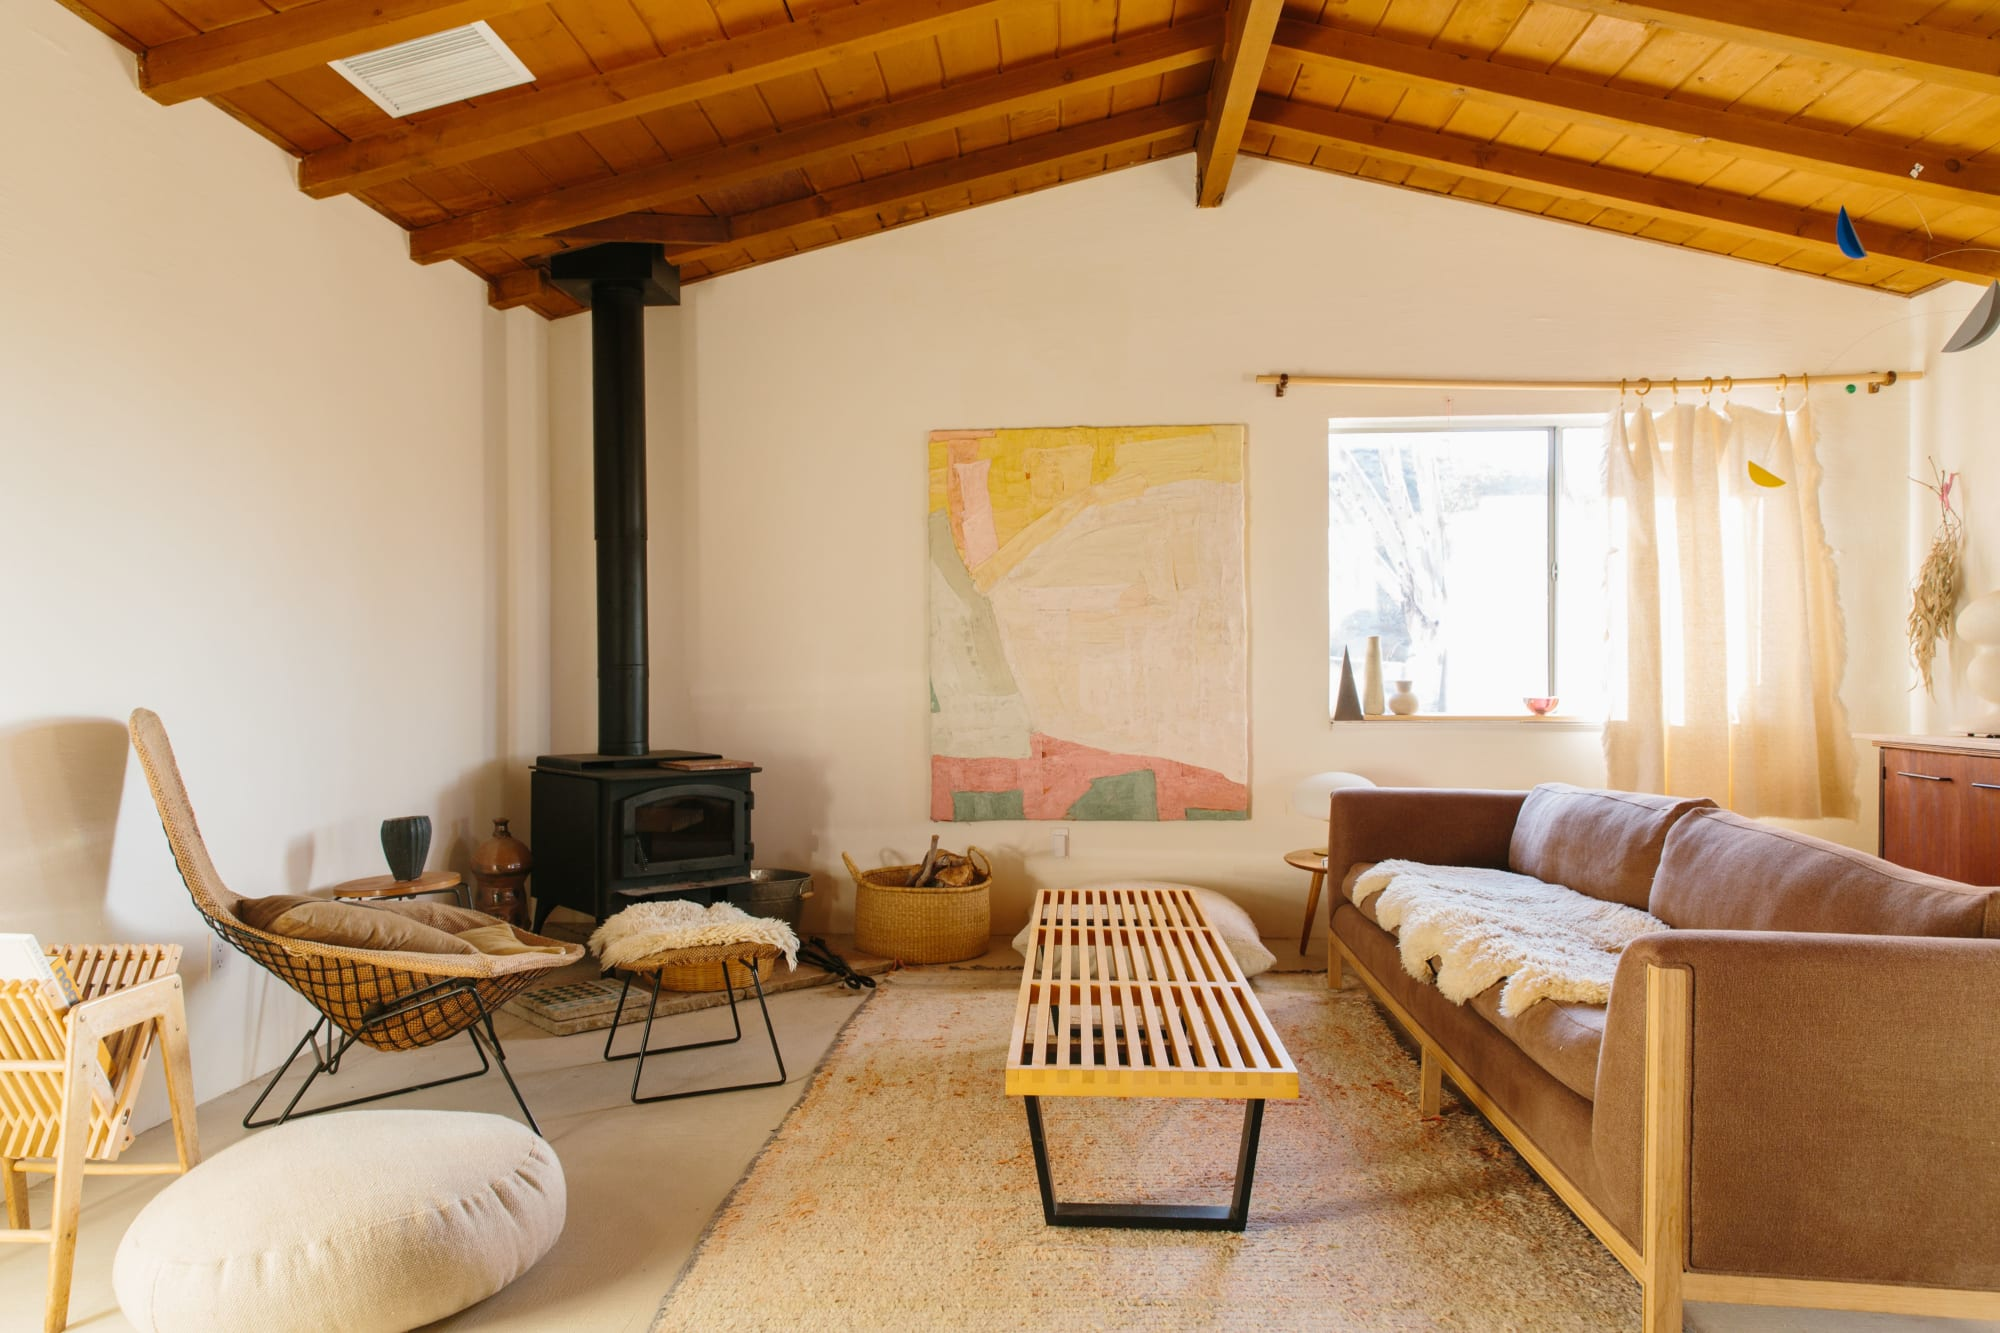 Chic living room with textiles and natural wood